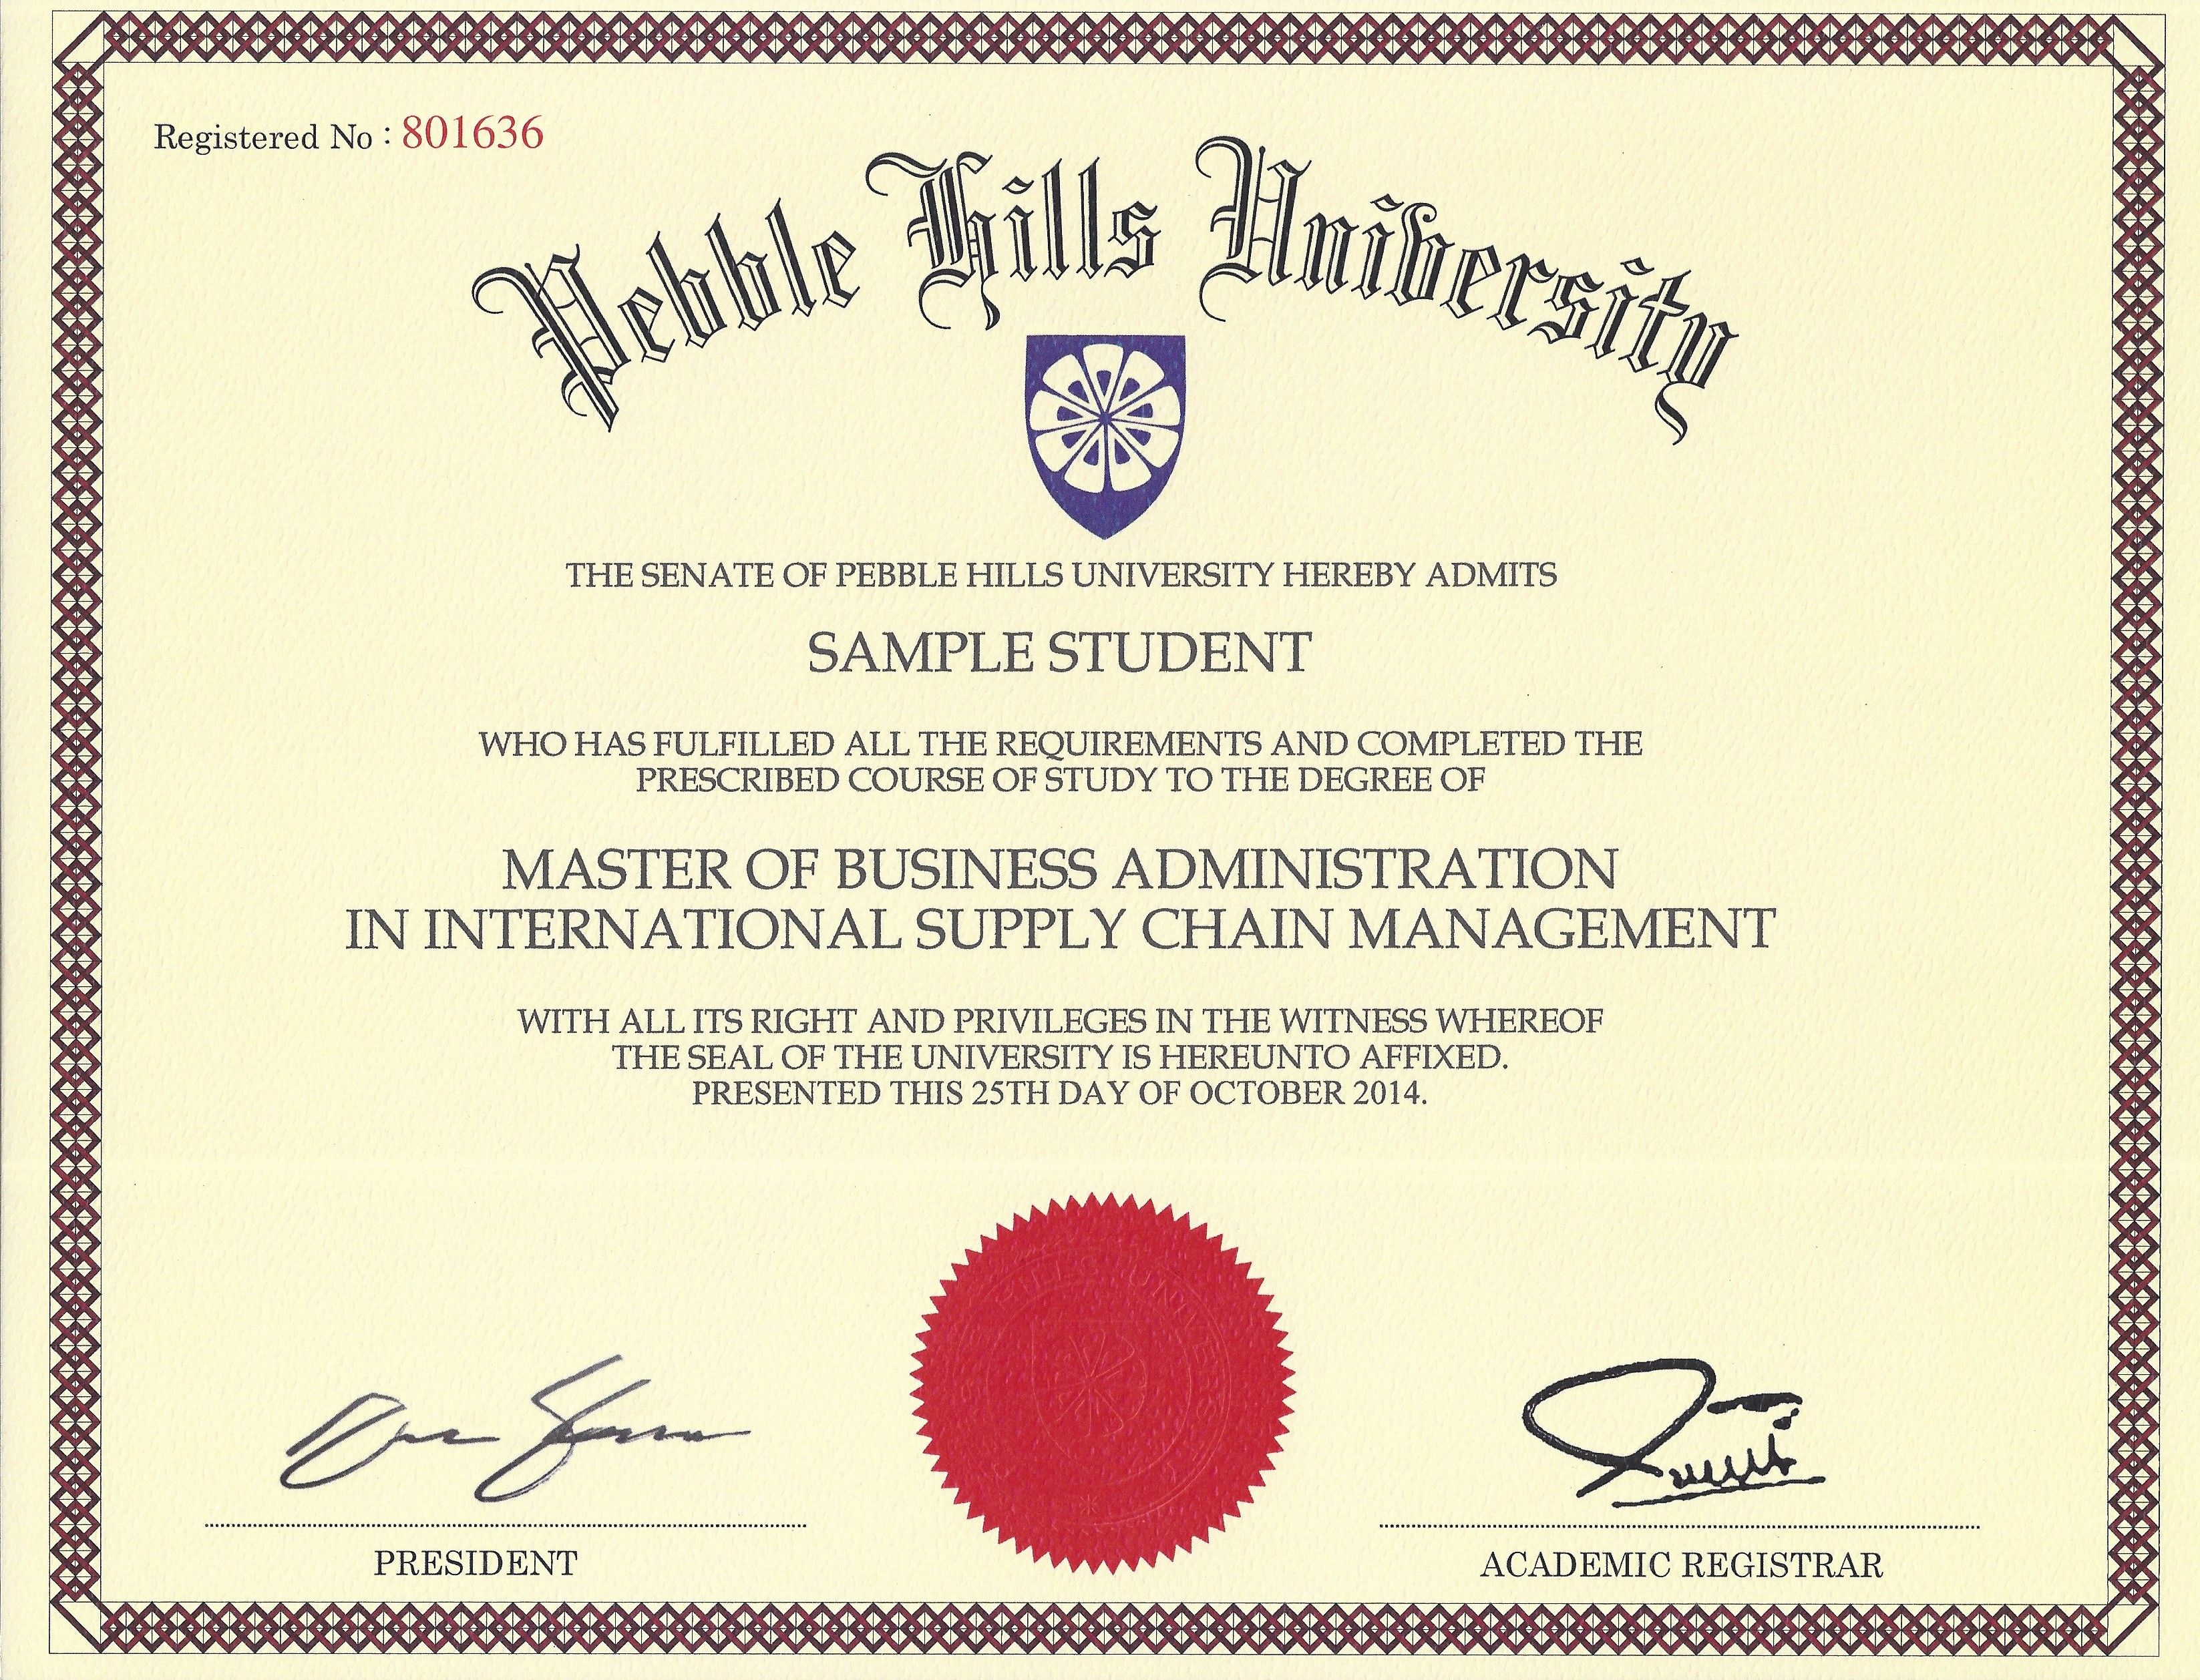 Sample degree certificate exolabogados sample degree certificate yadclub Image collections